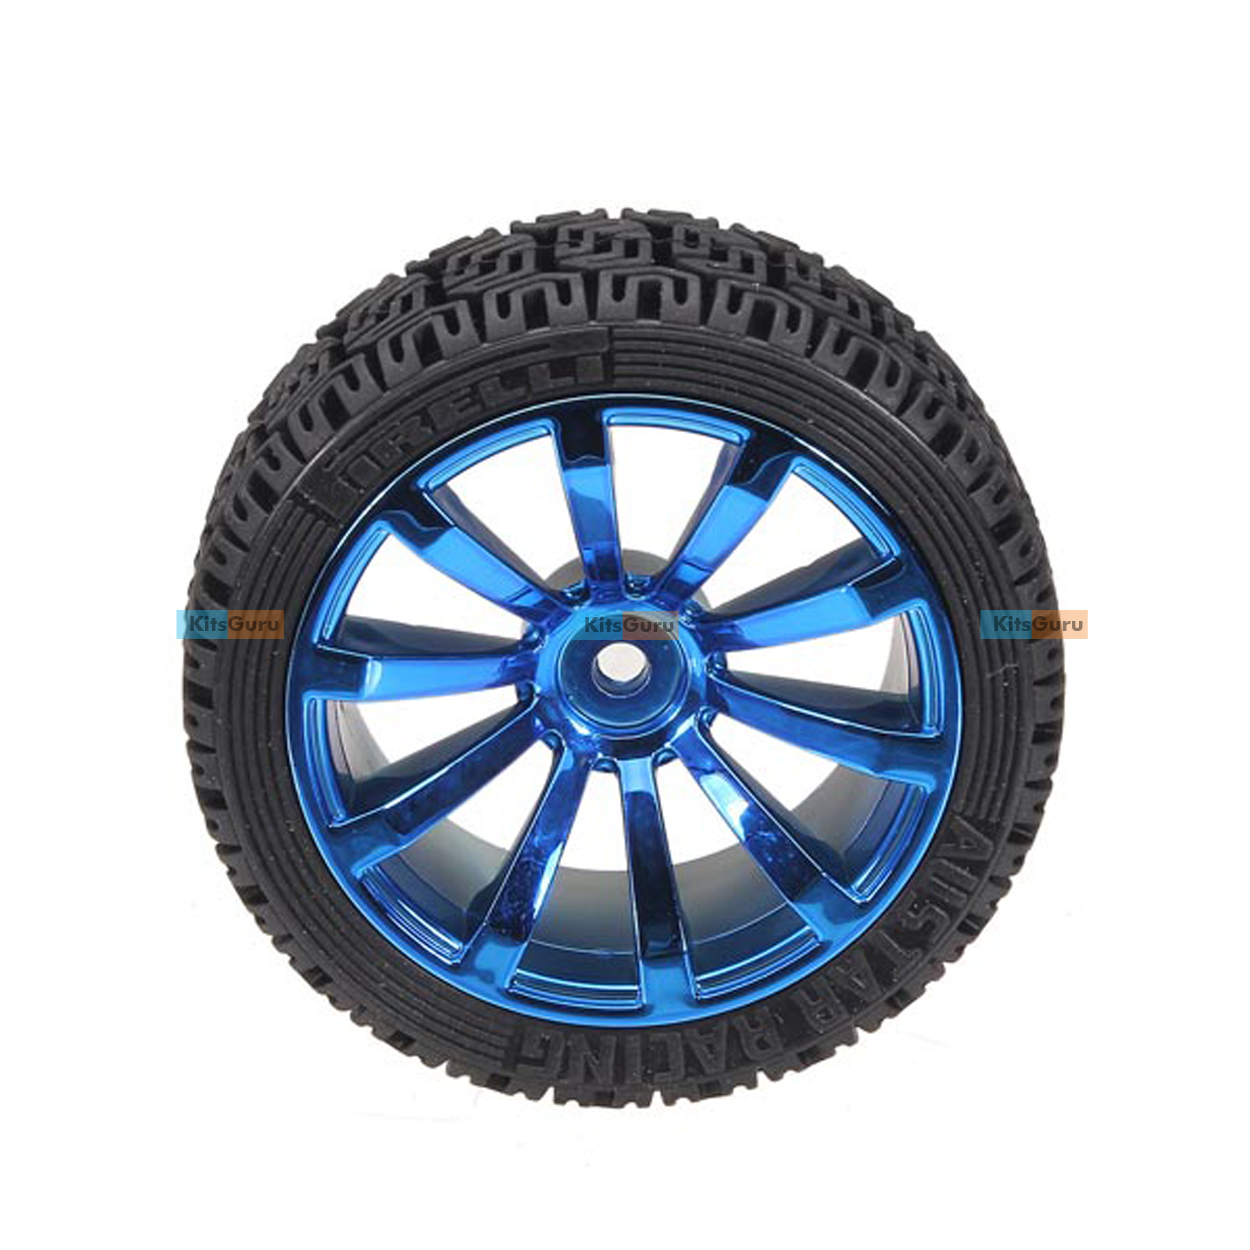 65mm-Robot-Smart-Car-12-Rim-WheelBlue.jpg